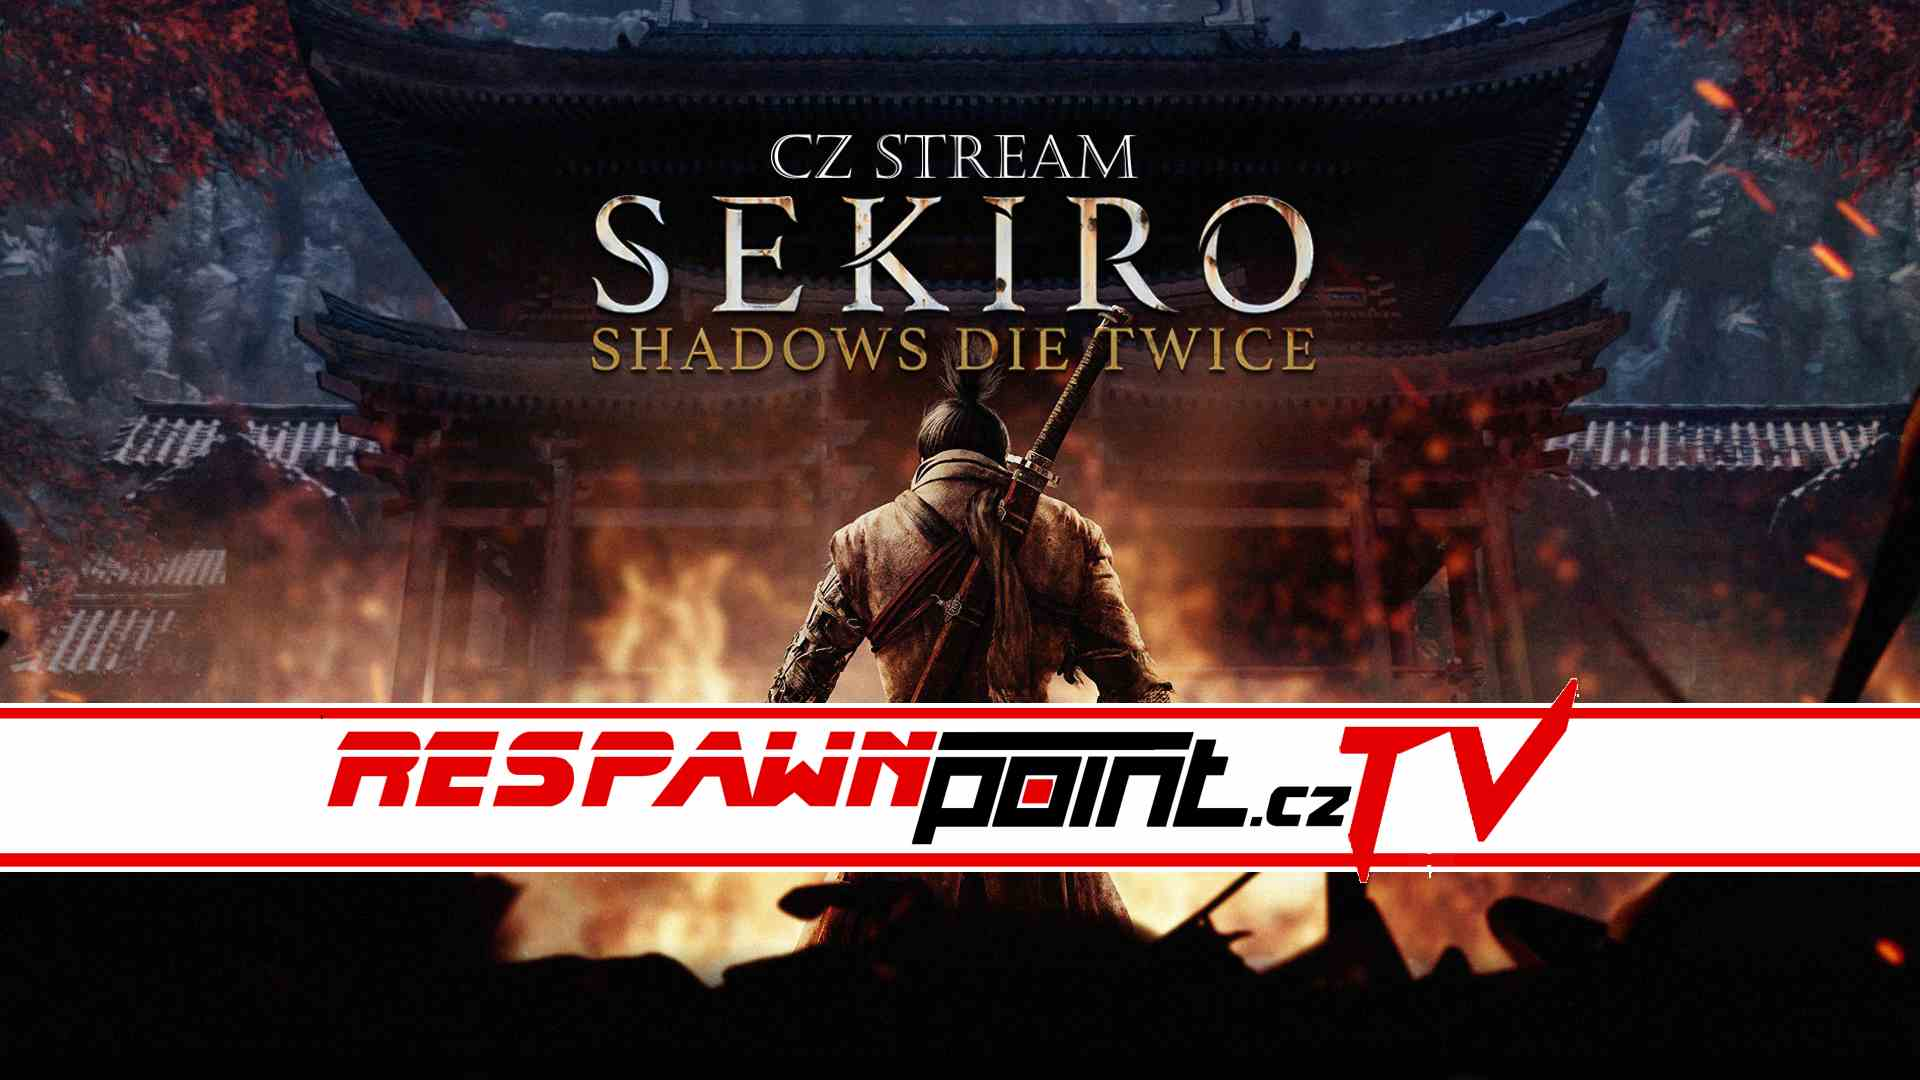 Sekiro Shadows Die Twice – CZ Stream